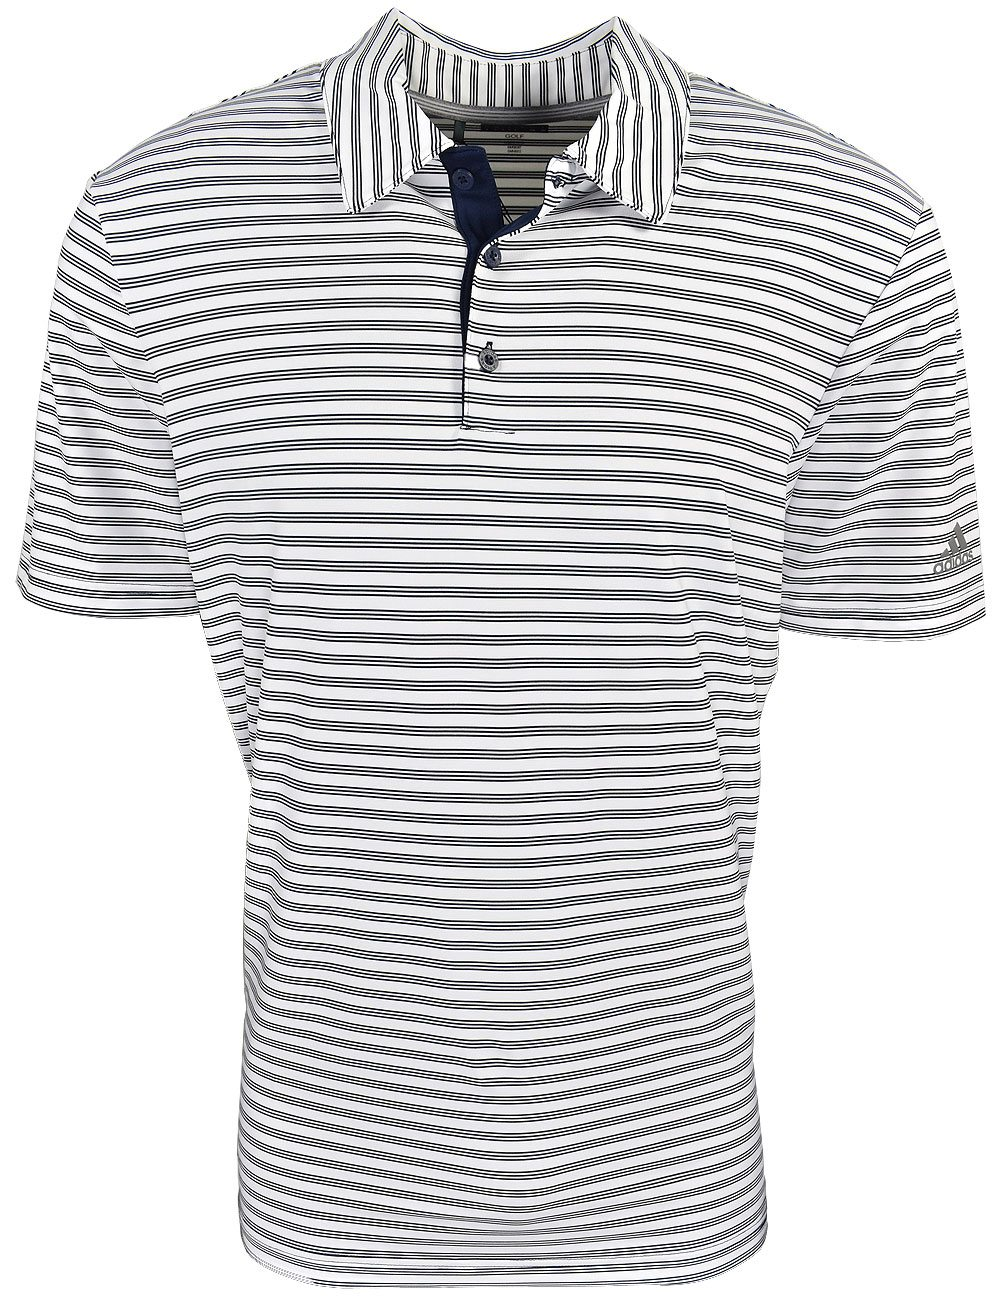 6342ed472b Adidas Golf Ultimate365 2-Color Stripe Polo | RockBottomGolf.com